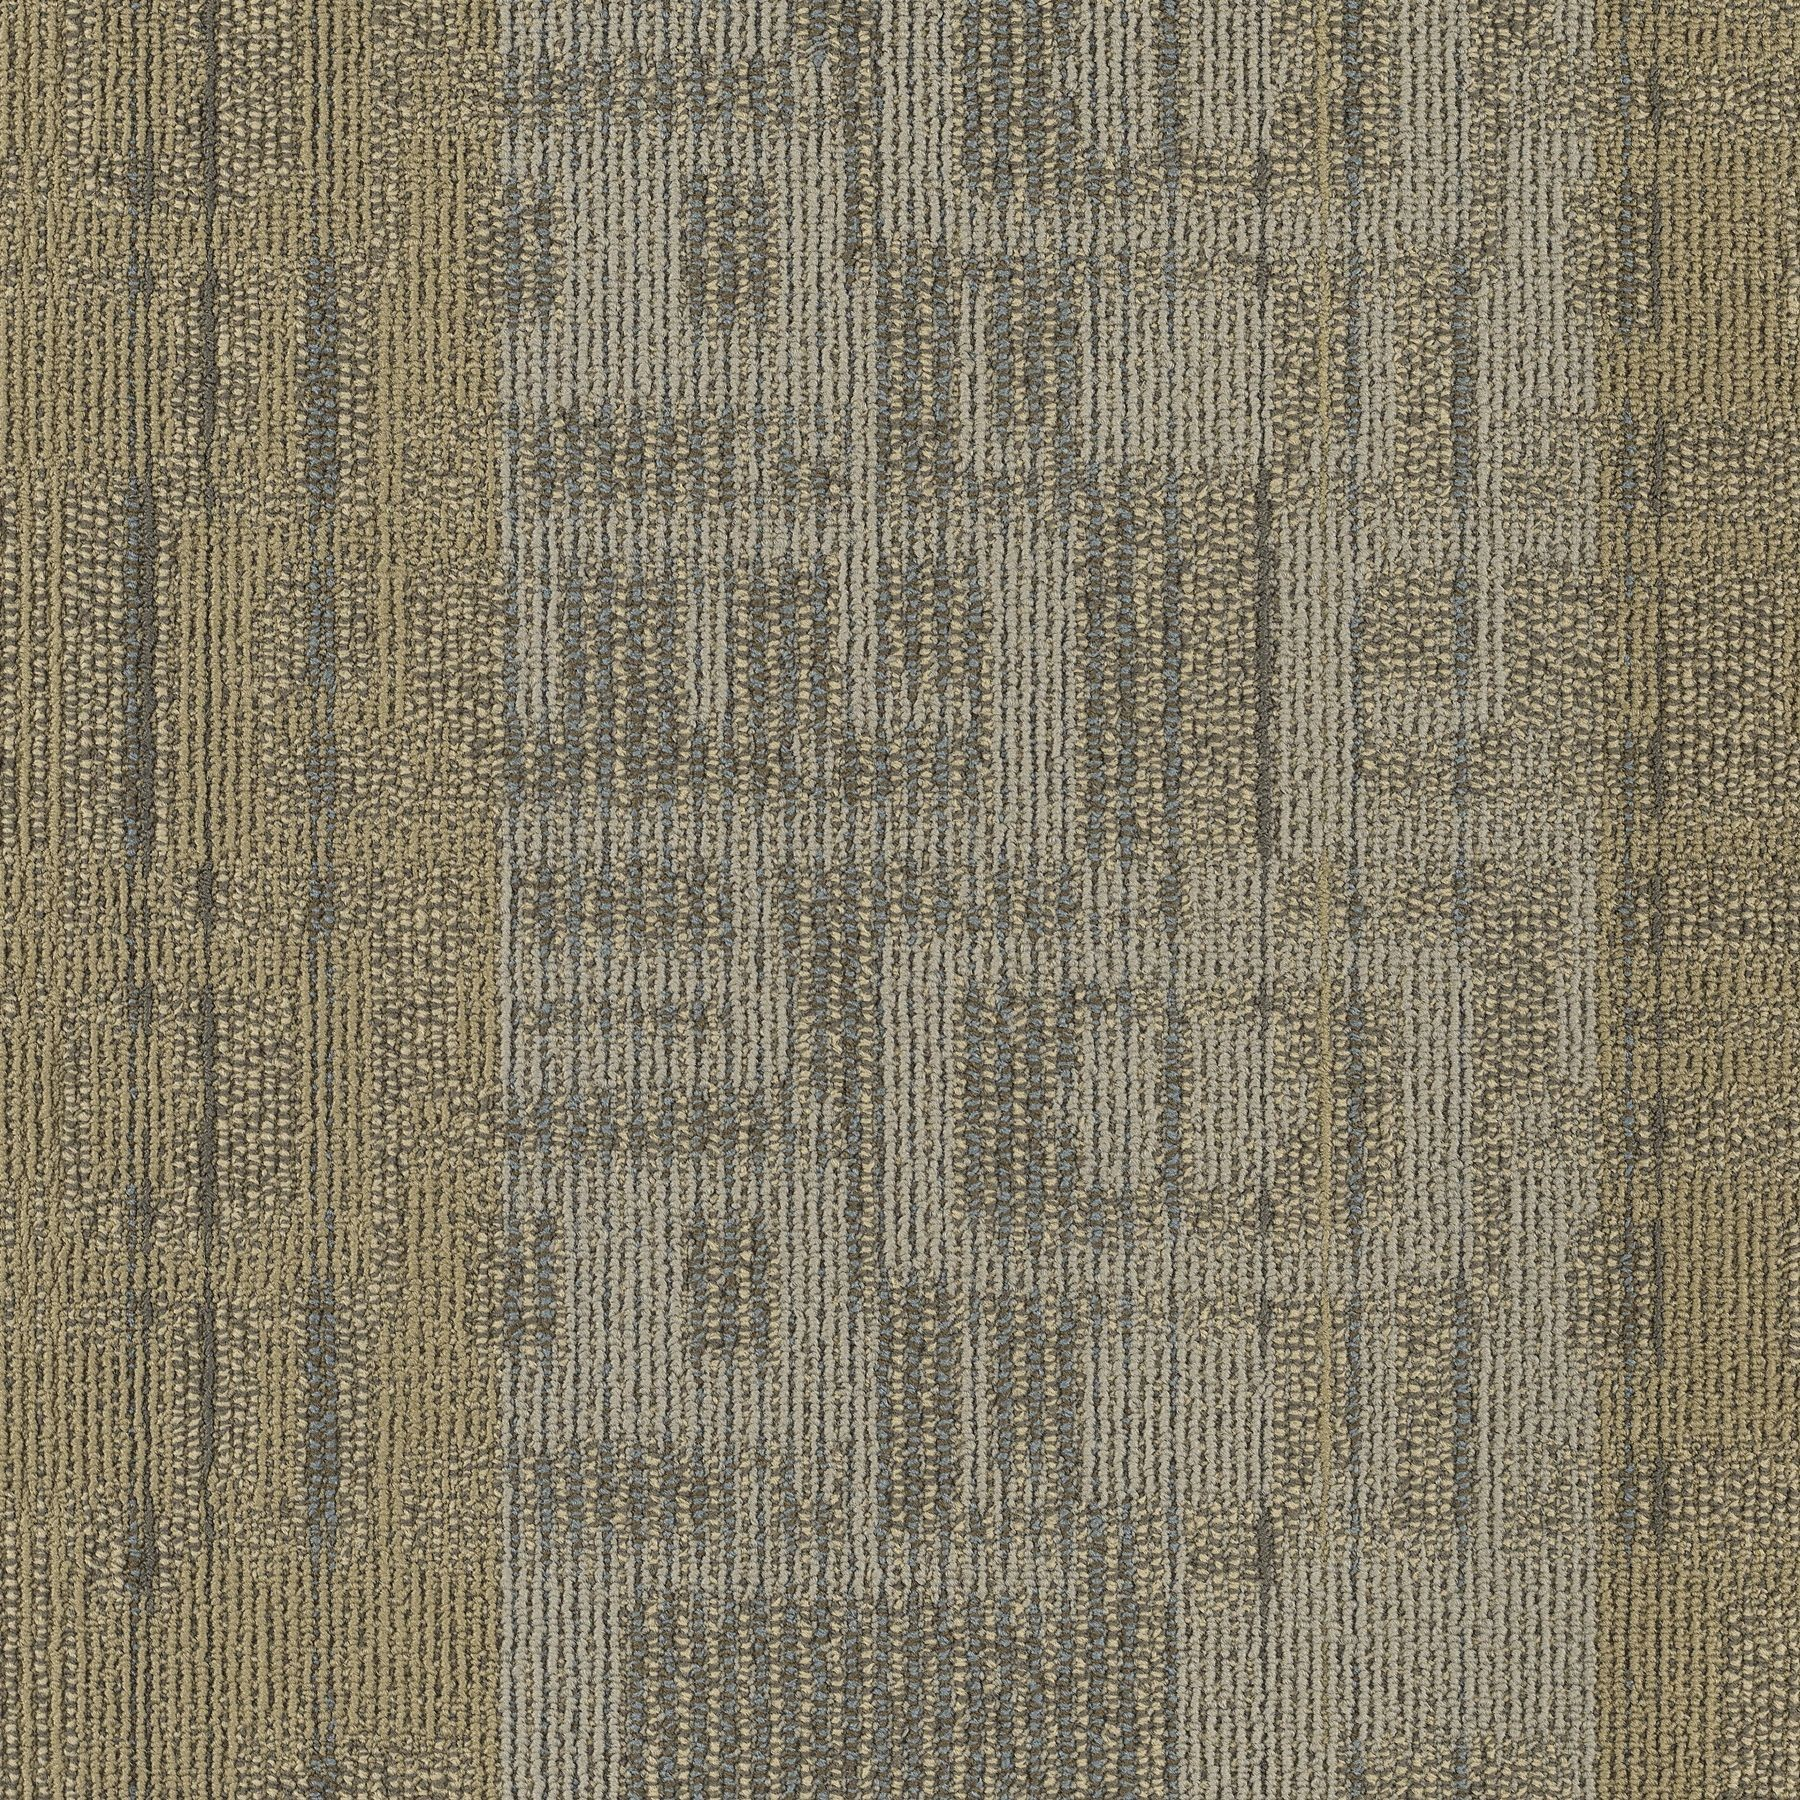 Modern Mingle Collection - Intermix Tile J0135 Color 00108 Carpet Tile